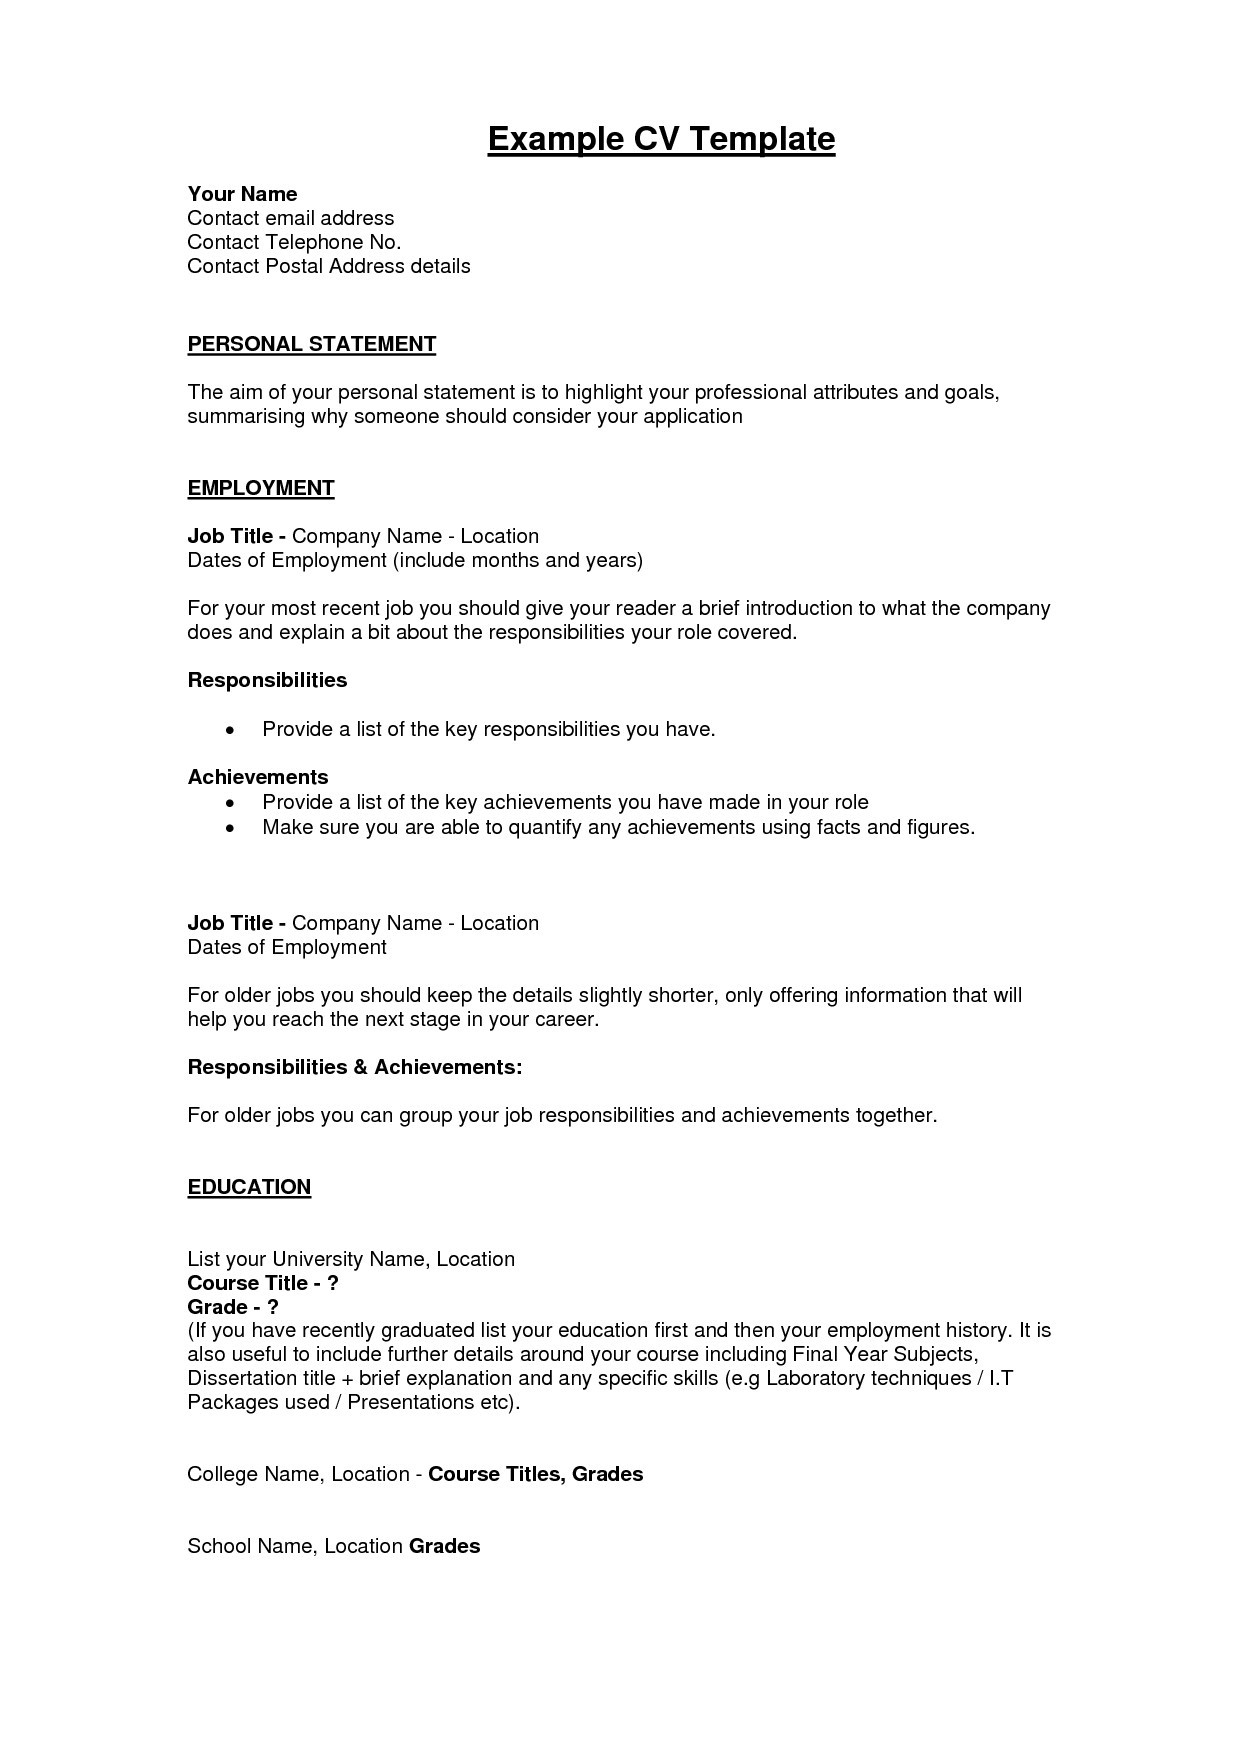 Need A Resume - I Need A Resume Fast Best Tips for Job Winning Cover Letter